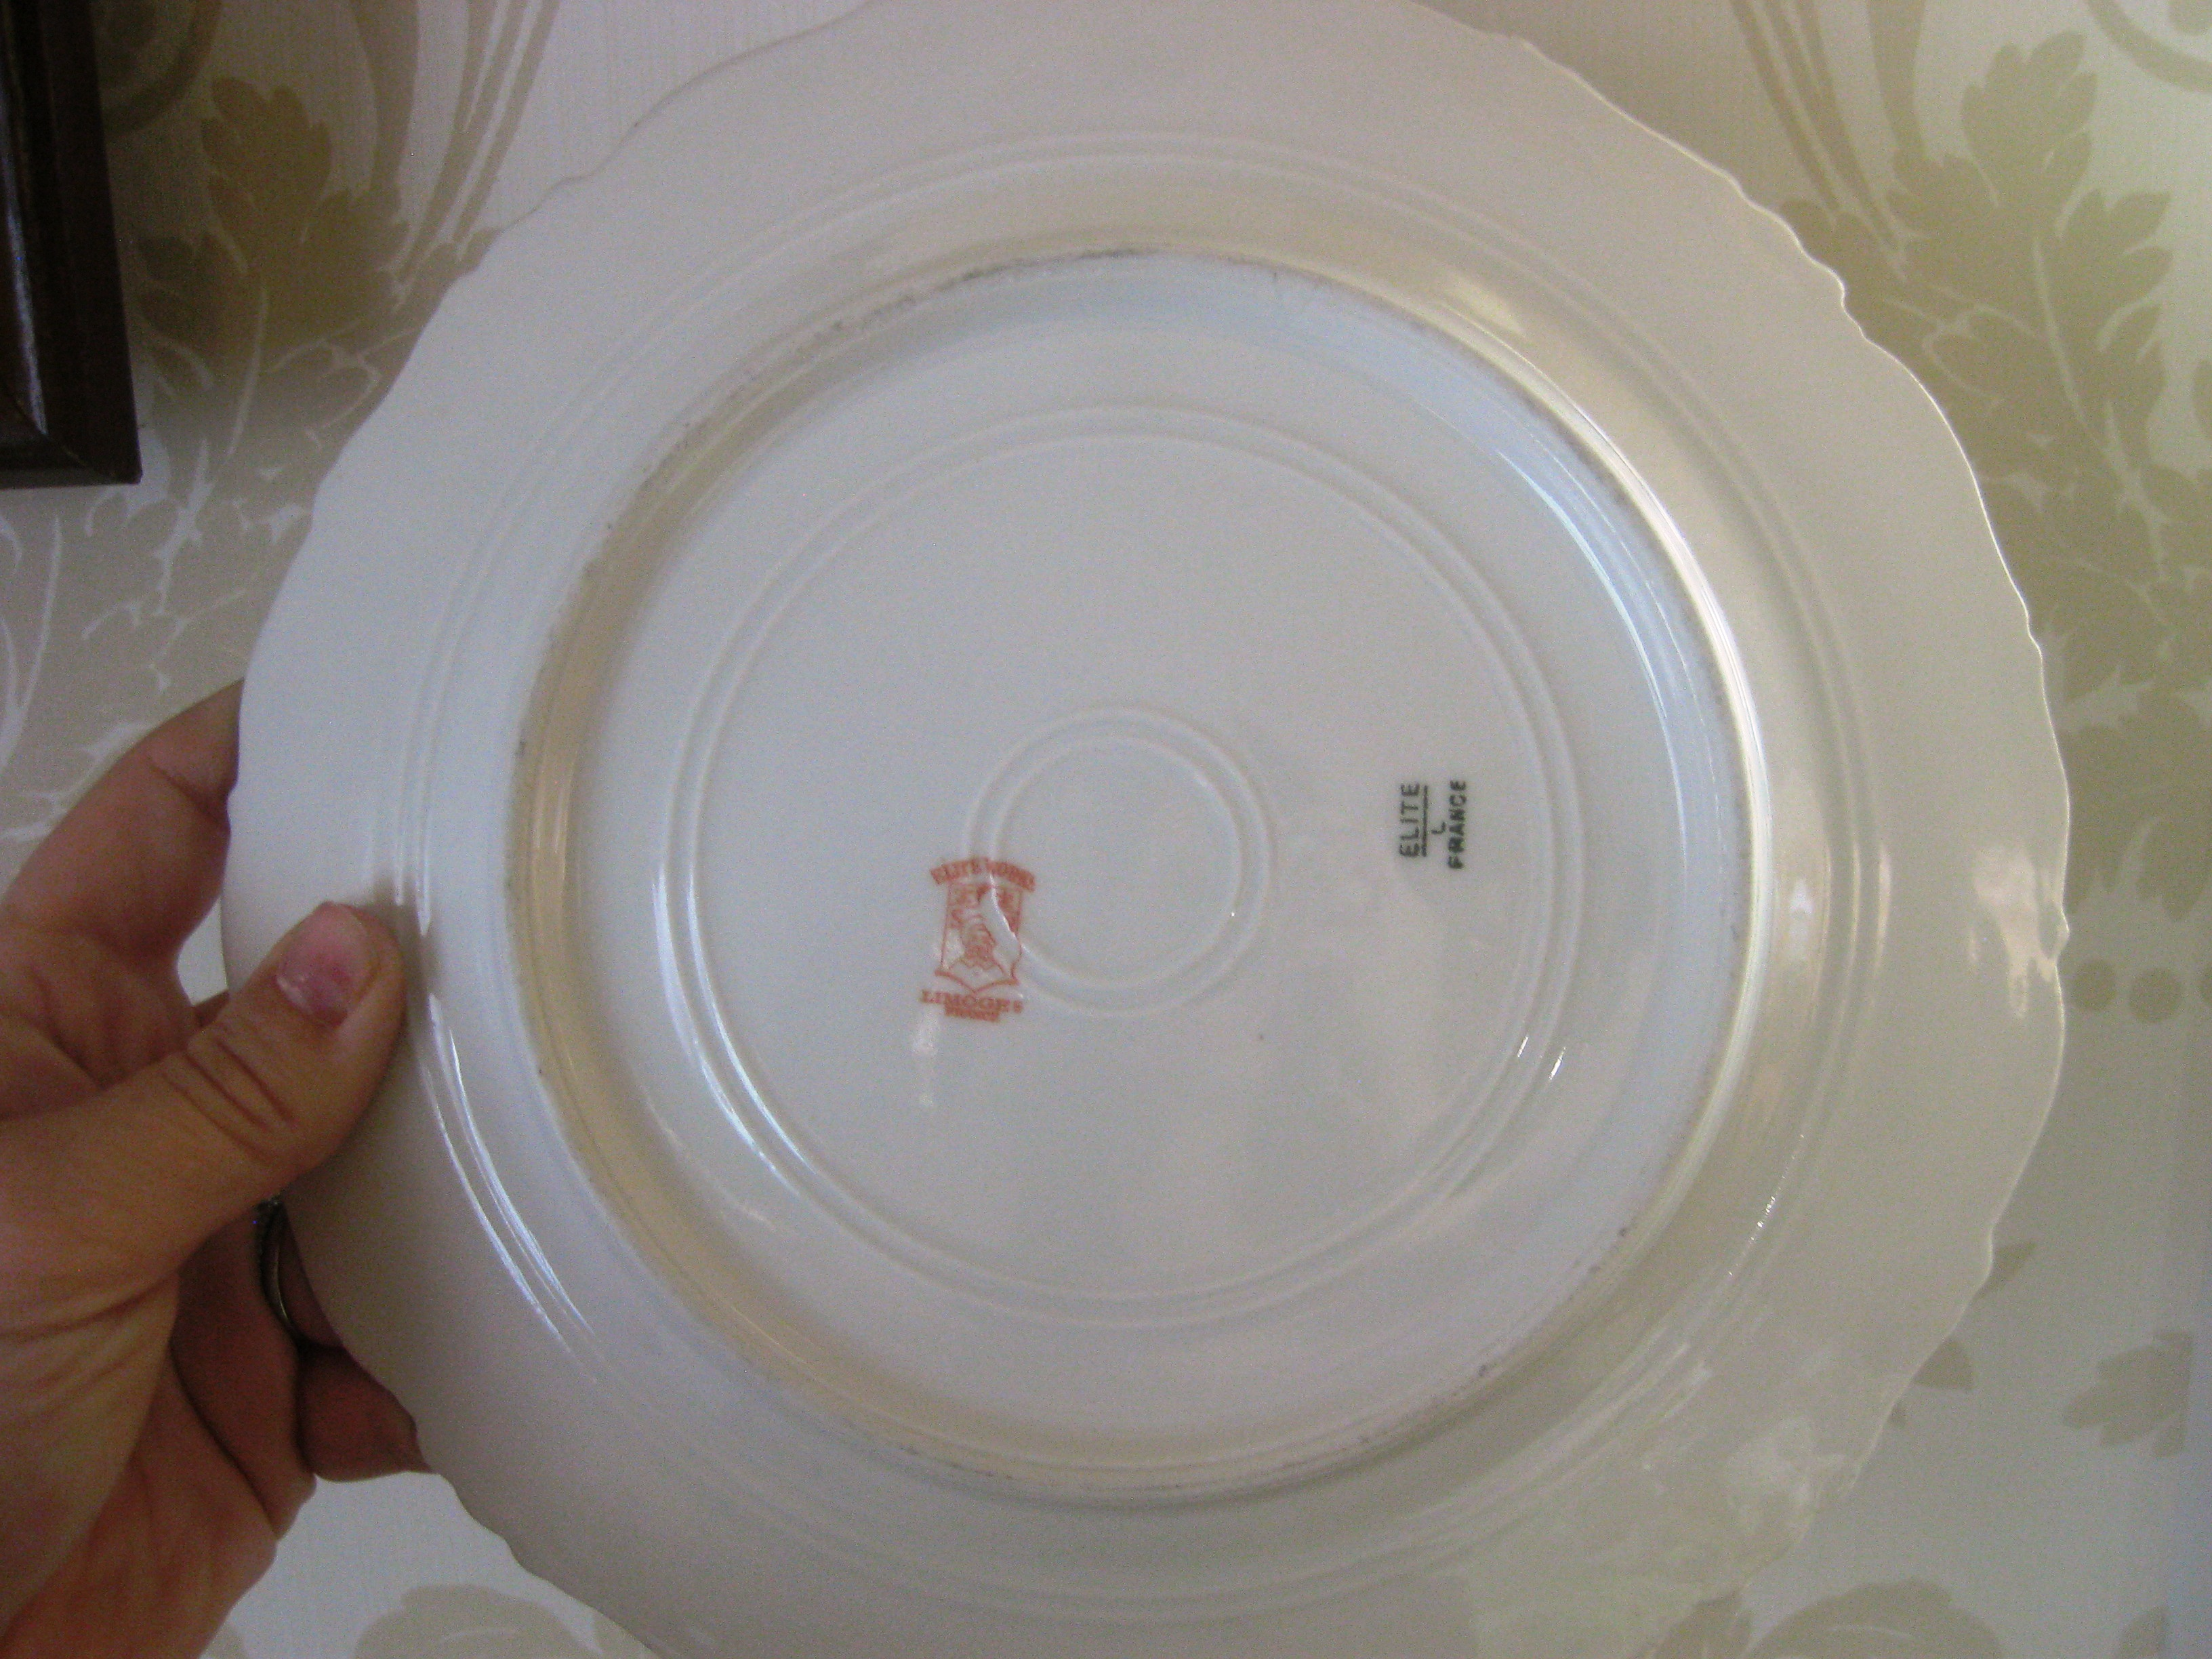 dating limoges porcelain An ae marking on china identifies a piece among the oldest french limoges porcelain, with a production date between 1797 and 1868 markings of ch field haviland, limoges, chf and chf/gdm indicate limoges china dating from 1868 to 1898.